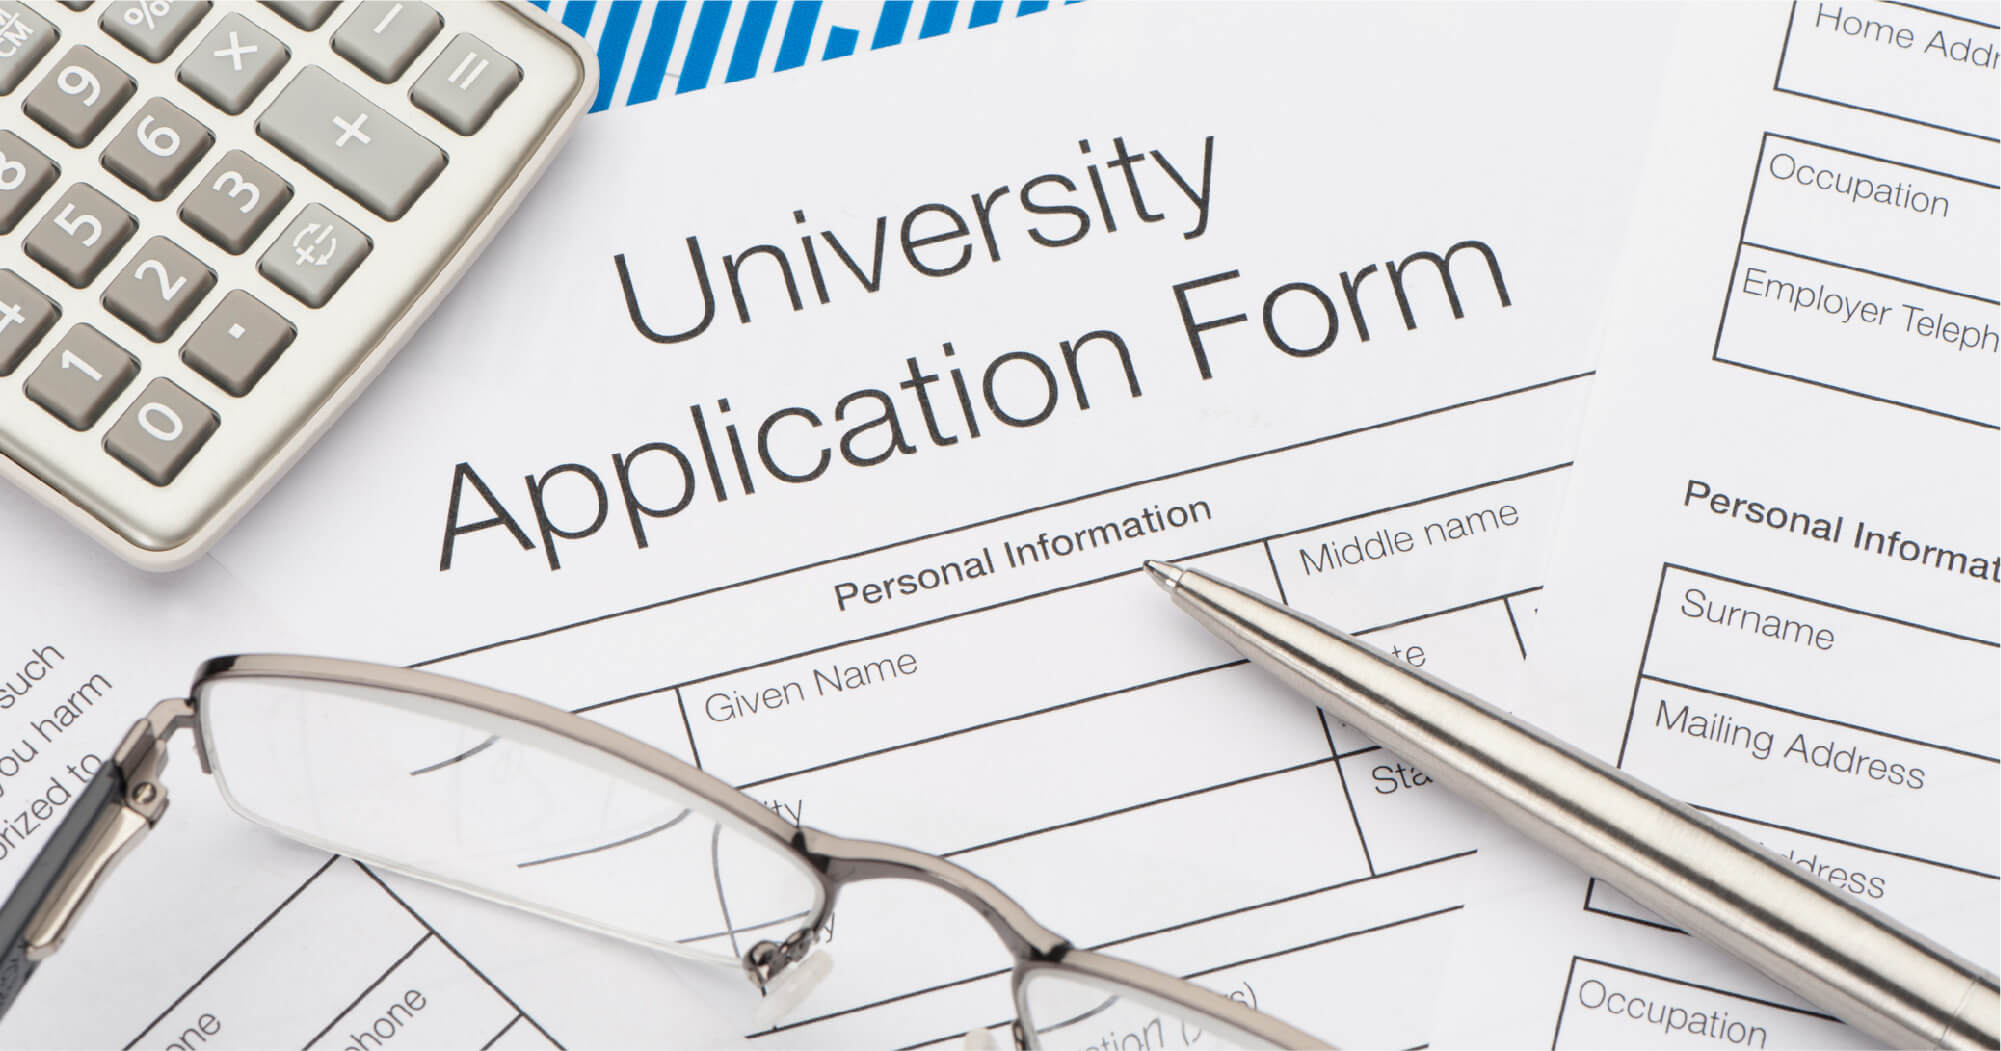 further education application form - SingSaver